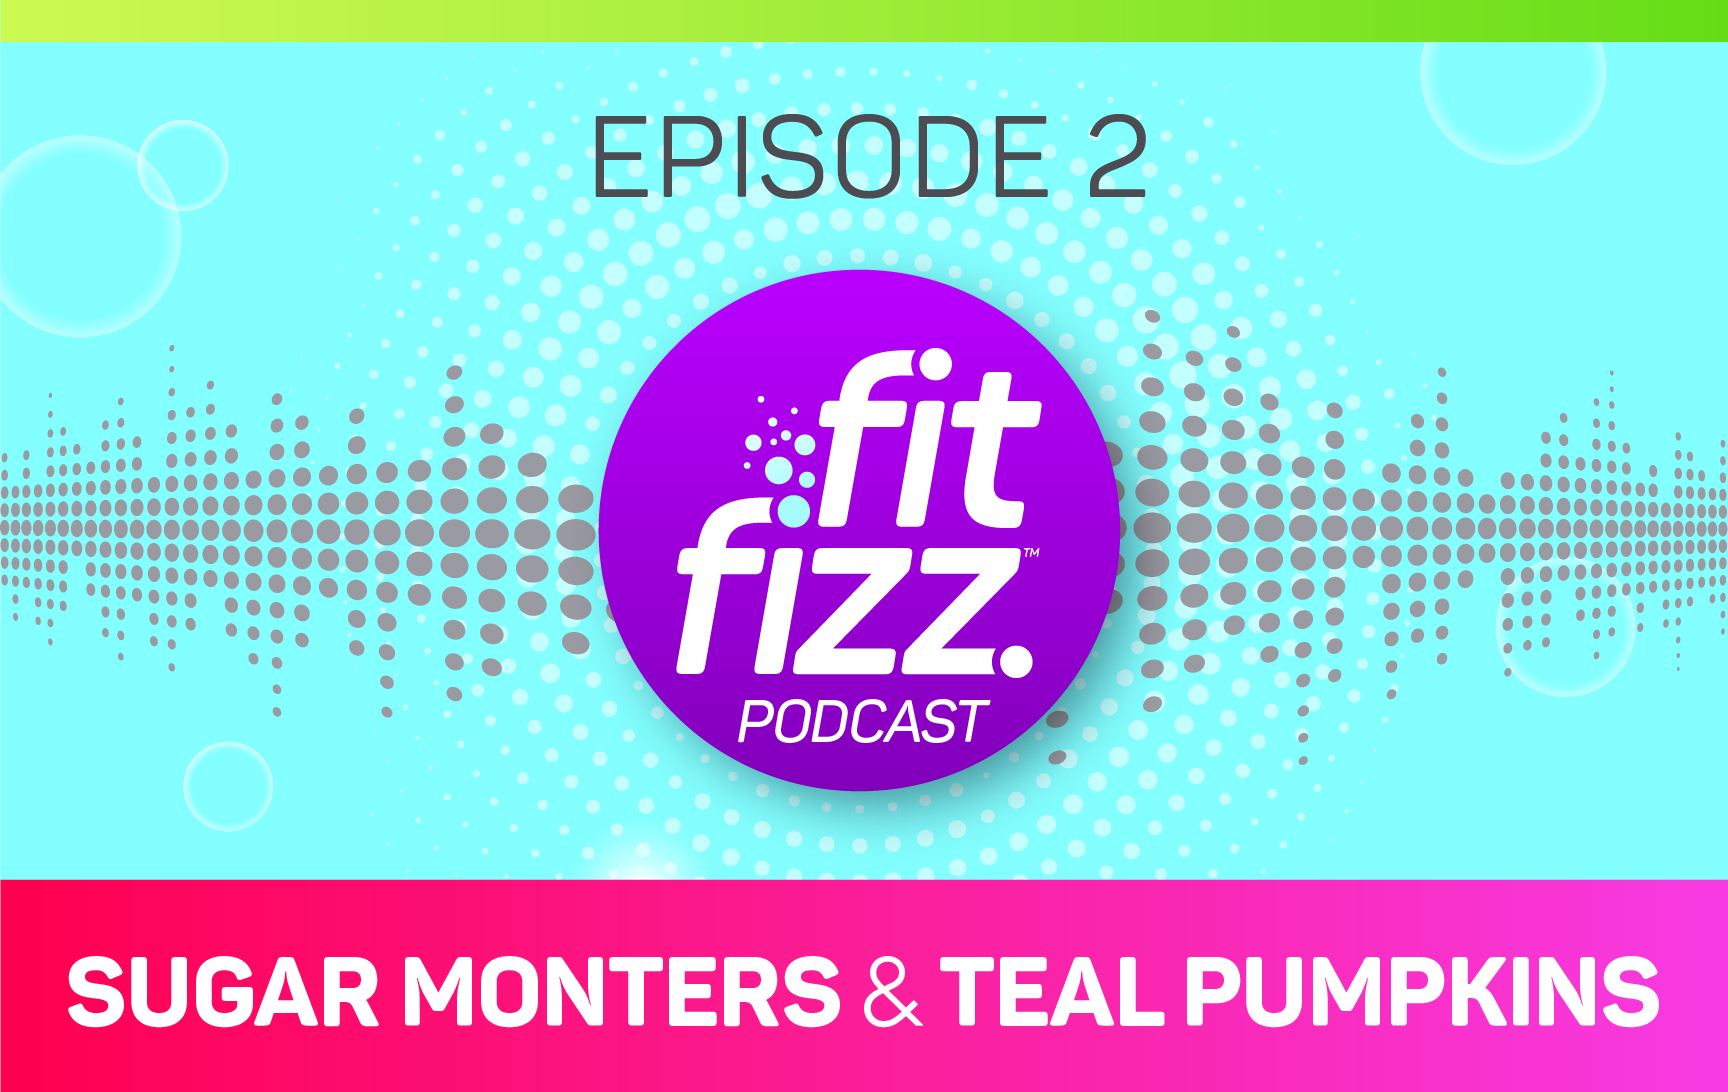 Podcast Episode 2: Sugar Monsters and Teal Pumpkins